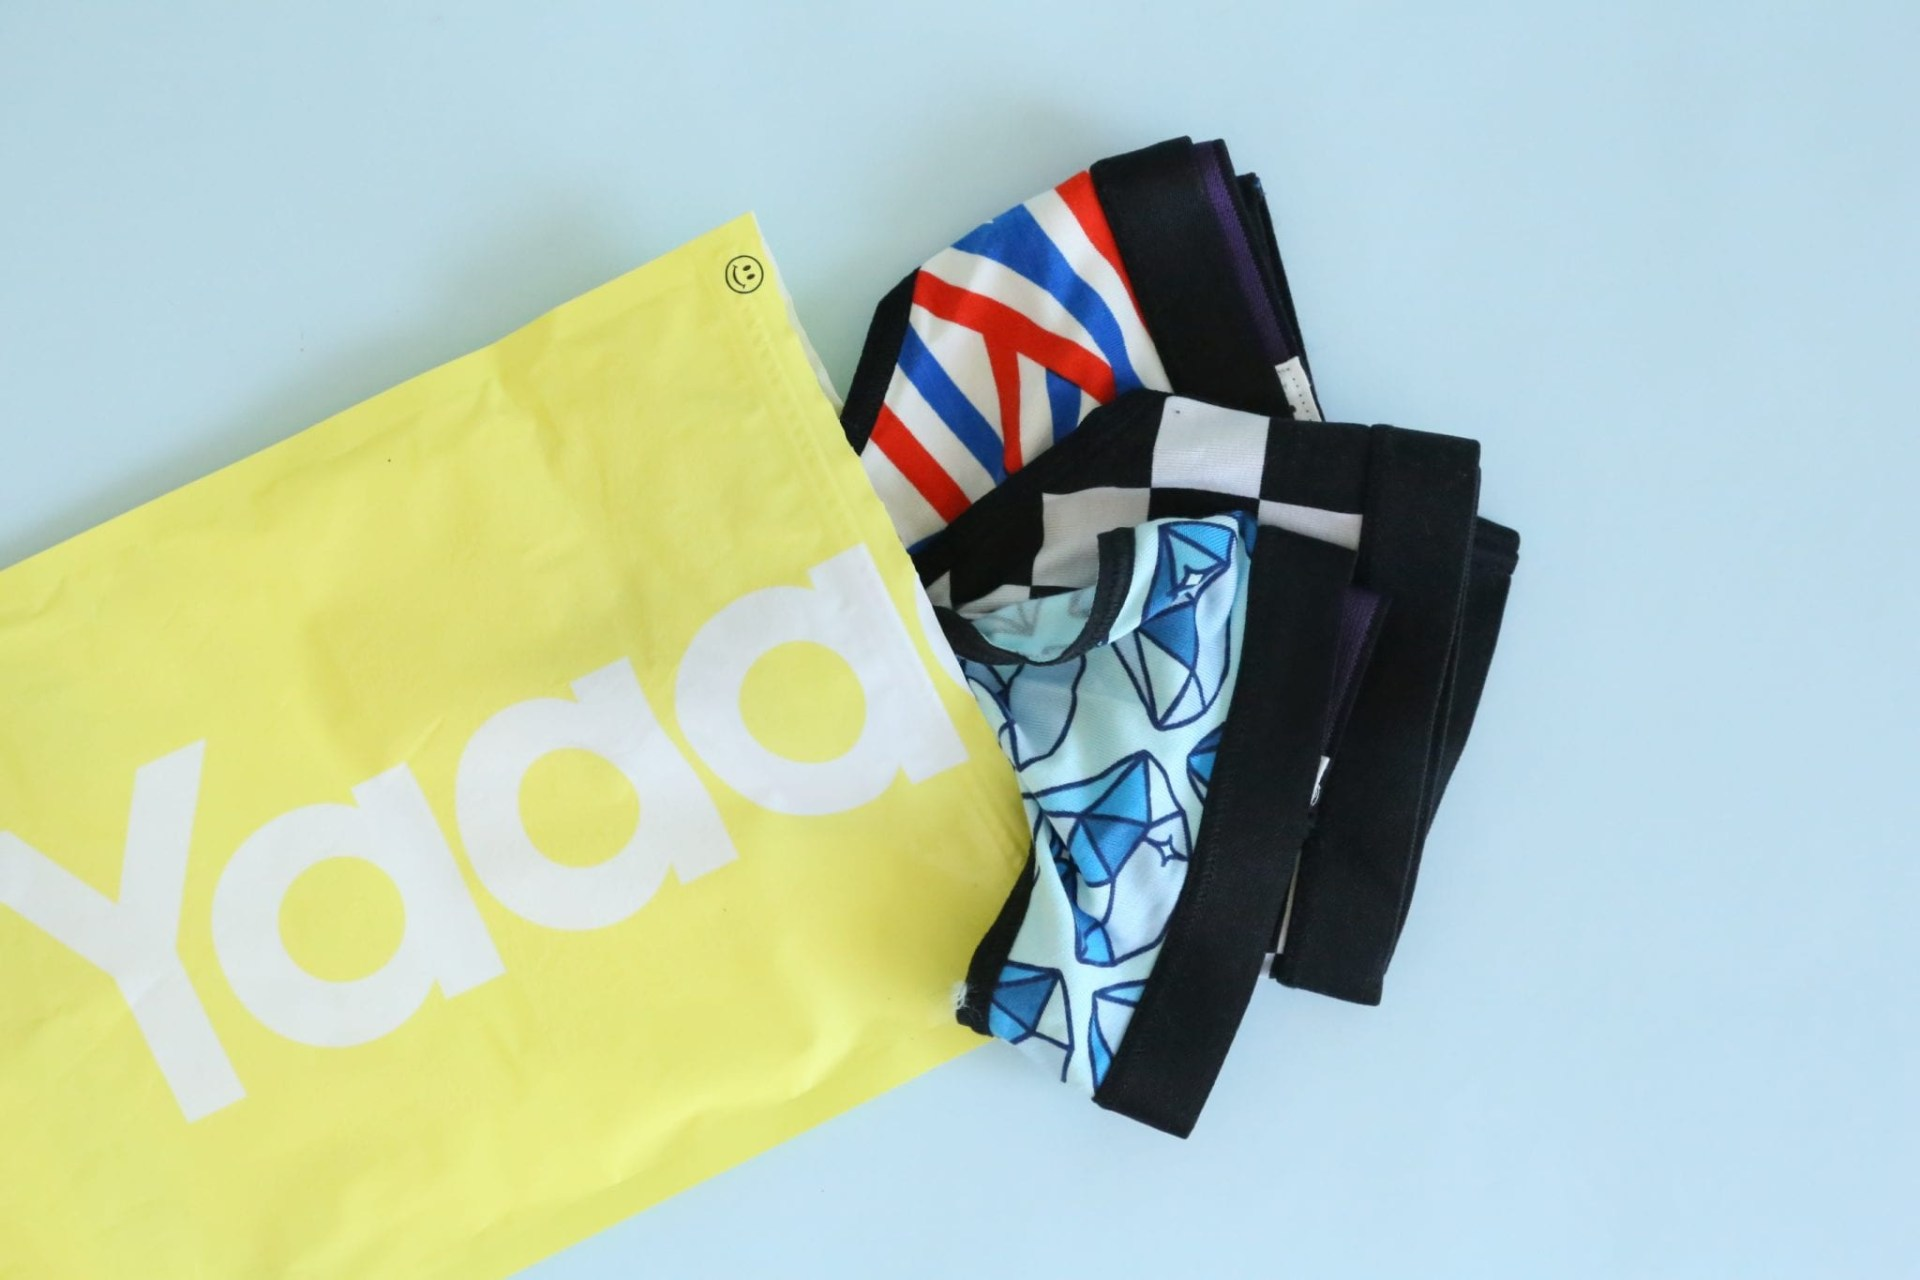 d54ed70221 MeUndies is a monthly subscription box that will help you build the  freshest and sharpest underwear drawer over the course of a year.